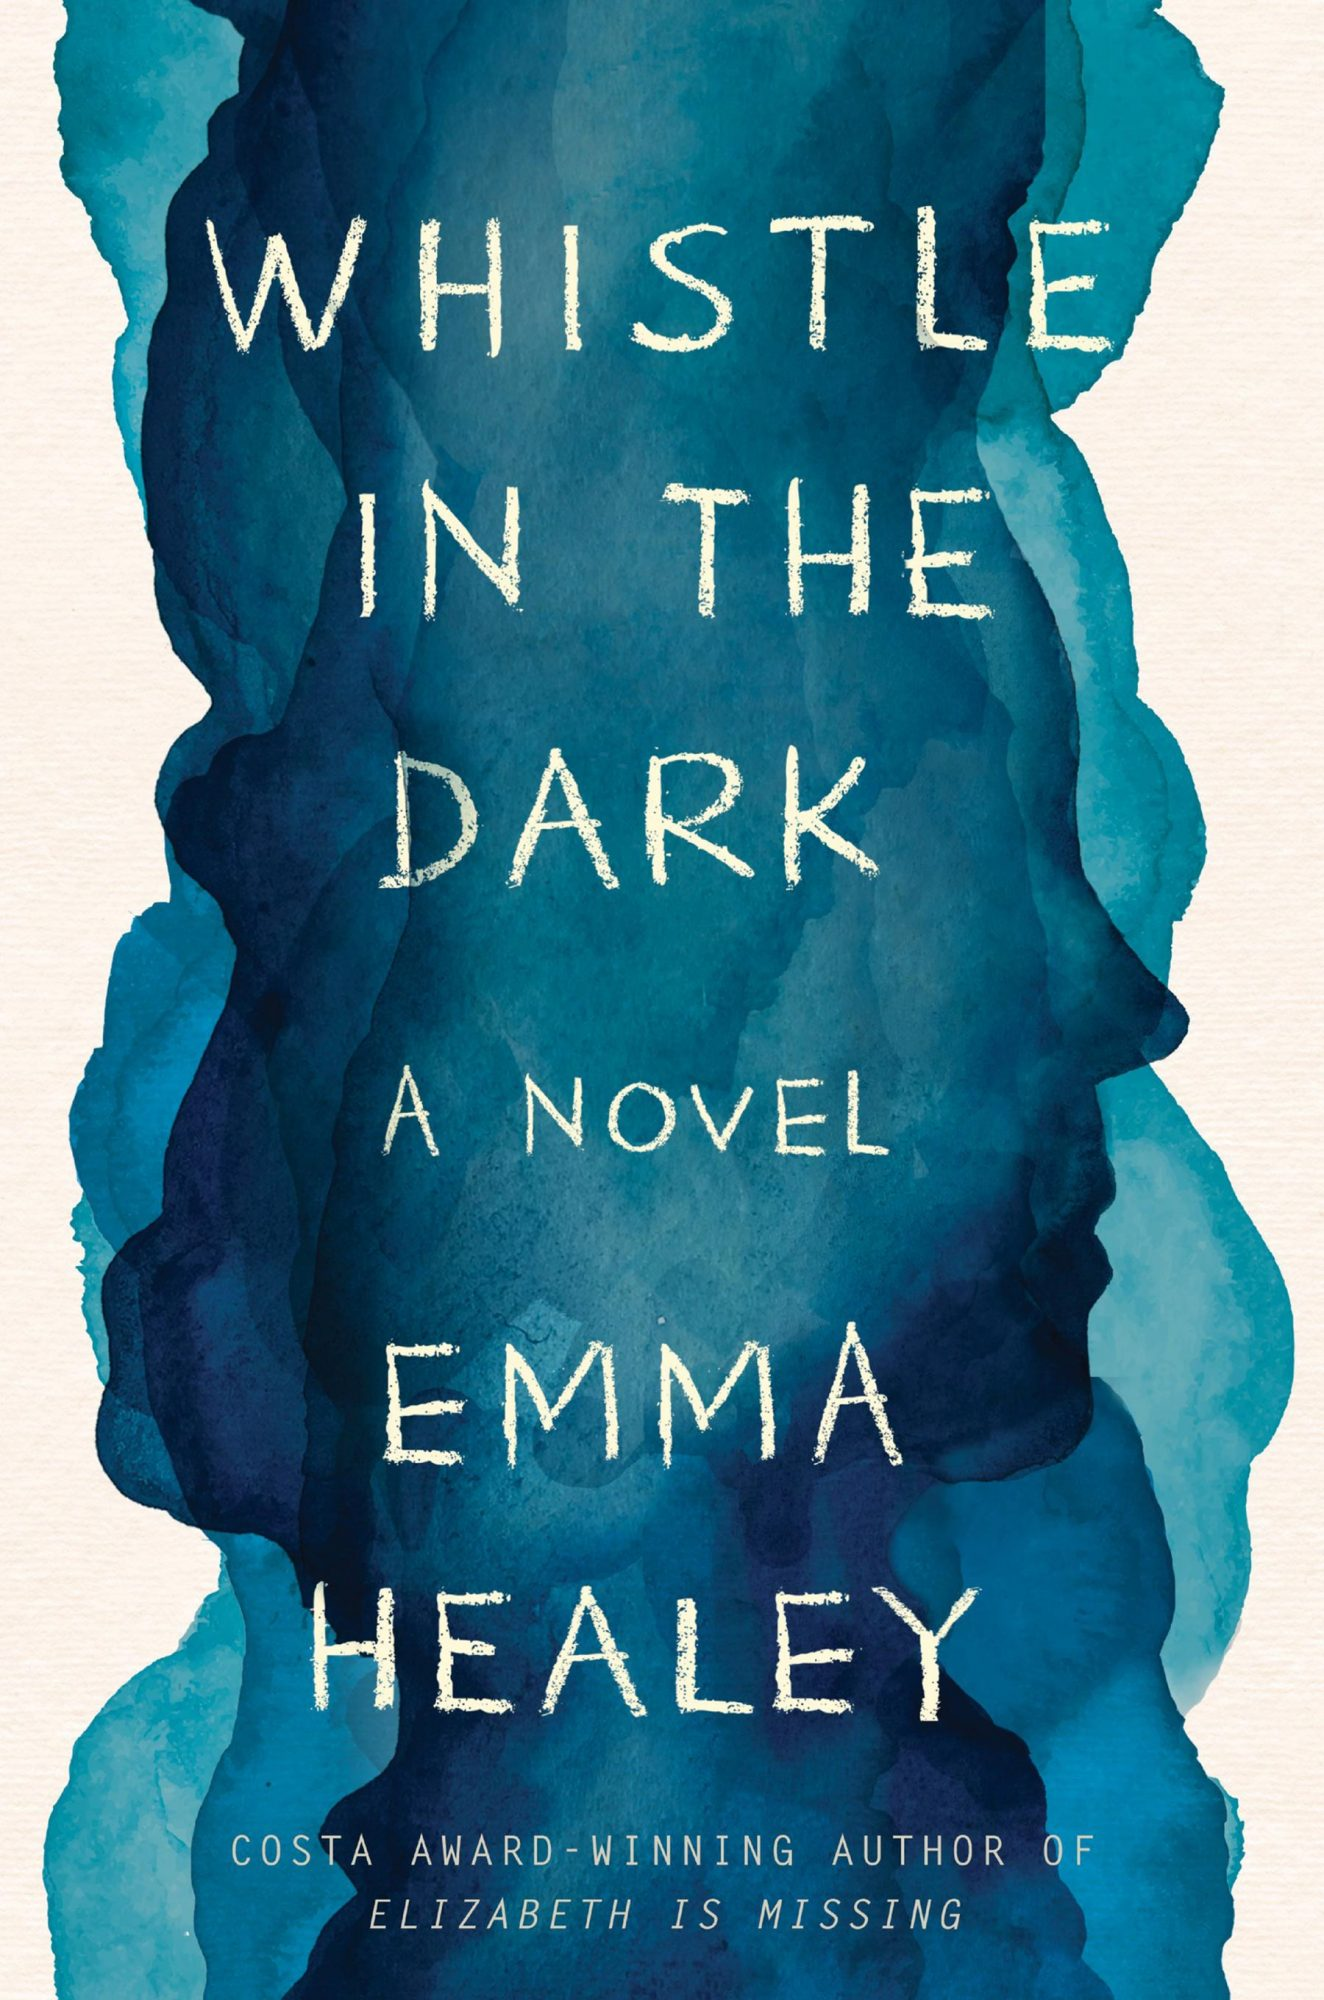 Whistle in the Dark: A Novel  by Emma Healey  Harper